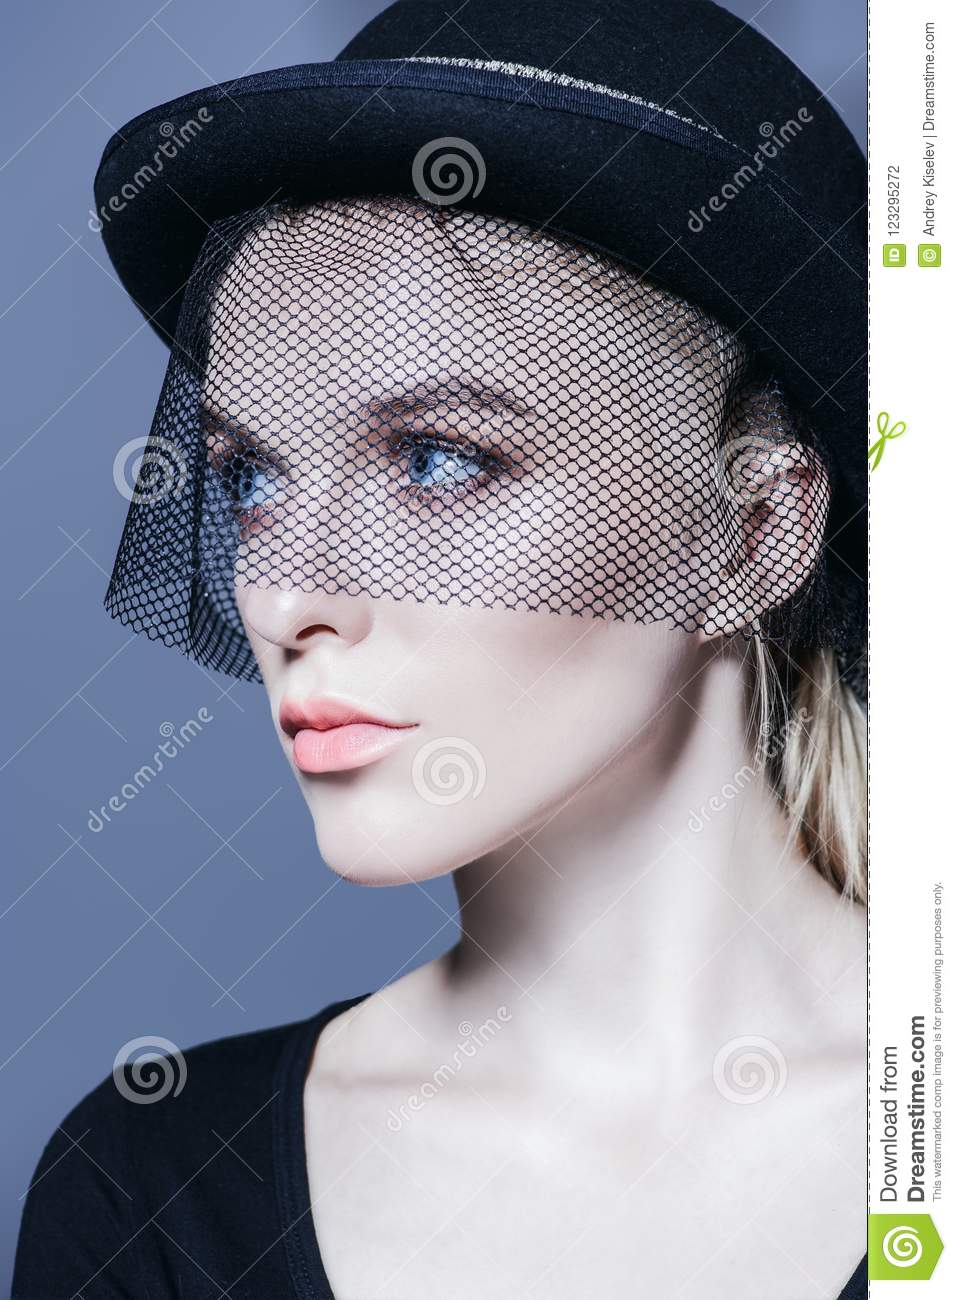 Fashion shot of a stunning young woman in hat with a veil. Headwear style. e05cd611cd0